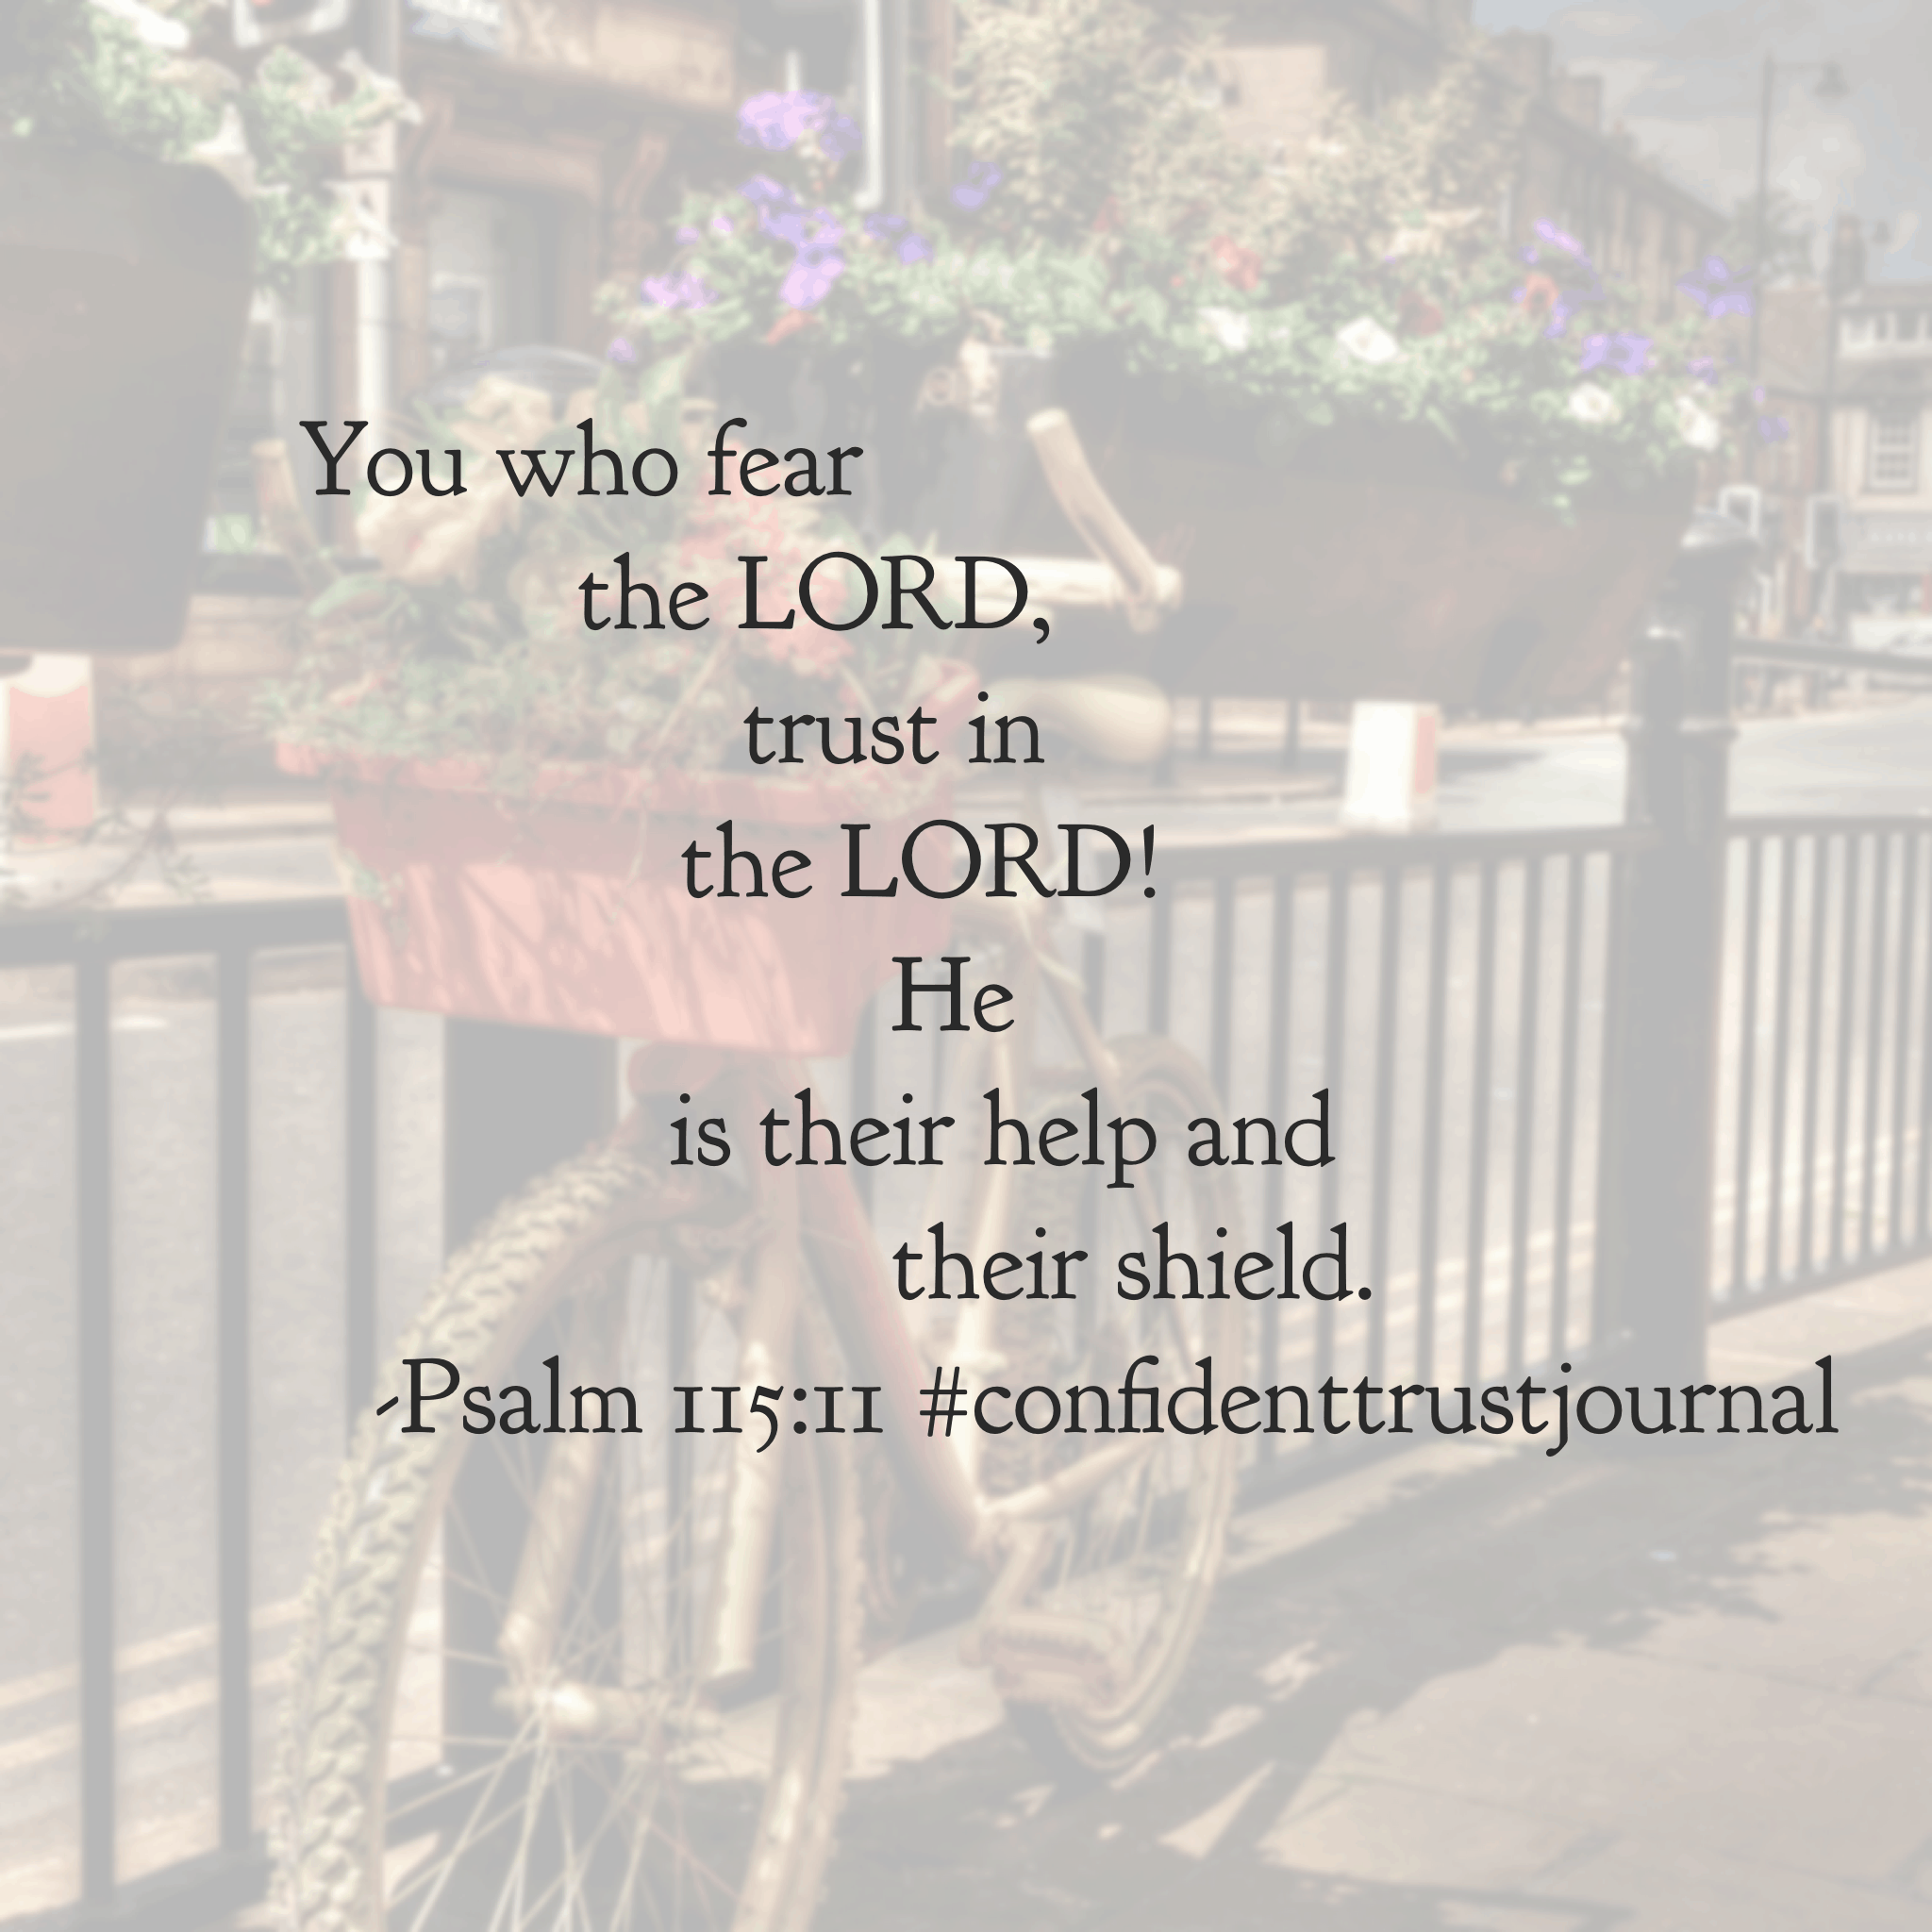 Happy Sunday! God is worthy of our trust and love; let's worship Him today.#confidenttrustjournal#biblereadingplan